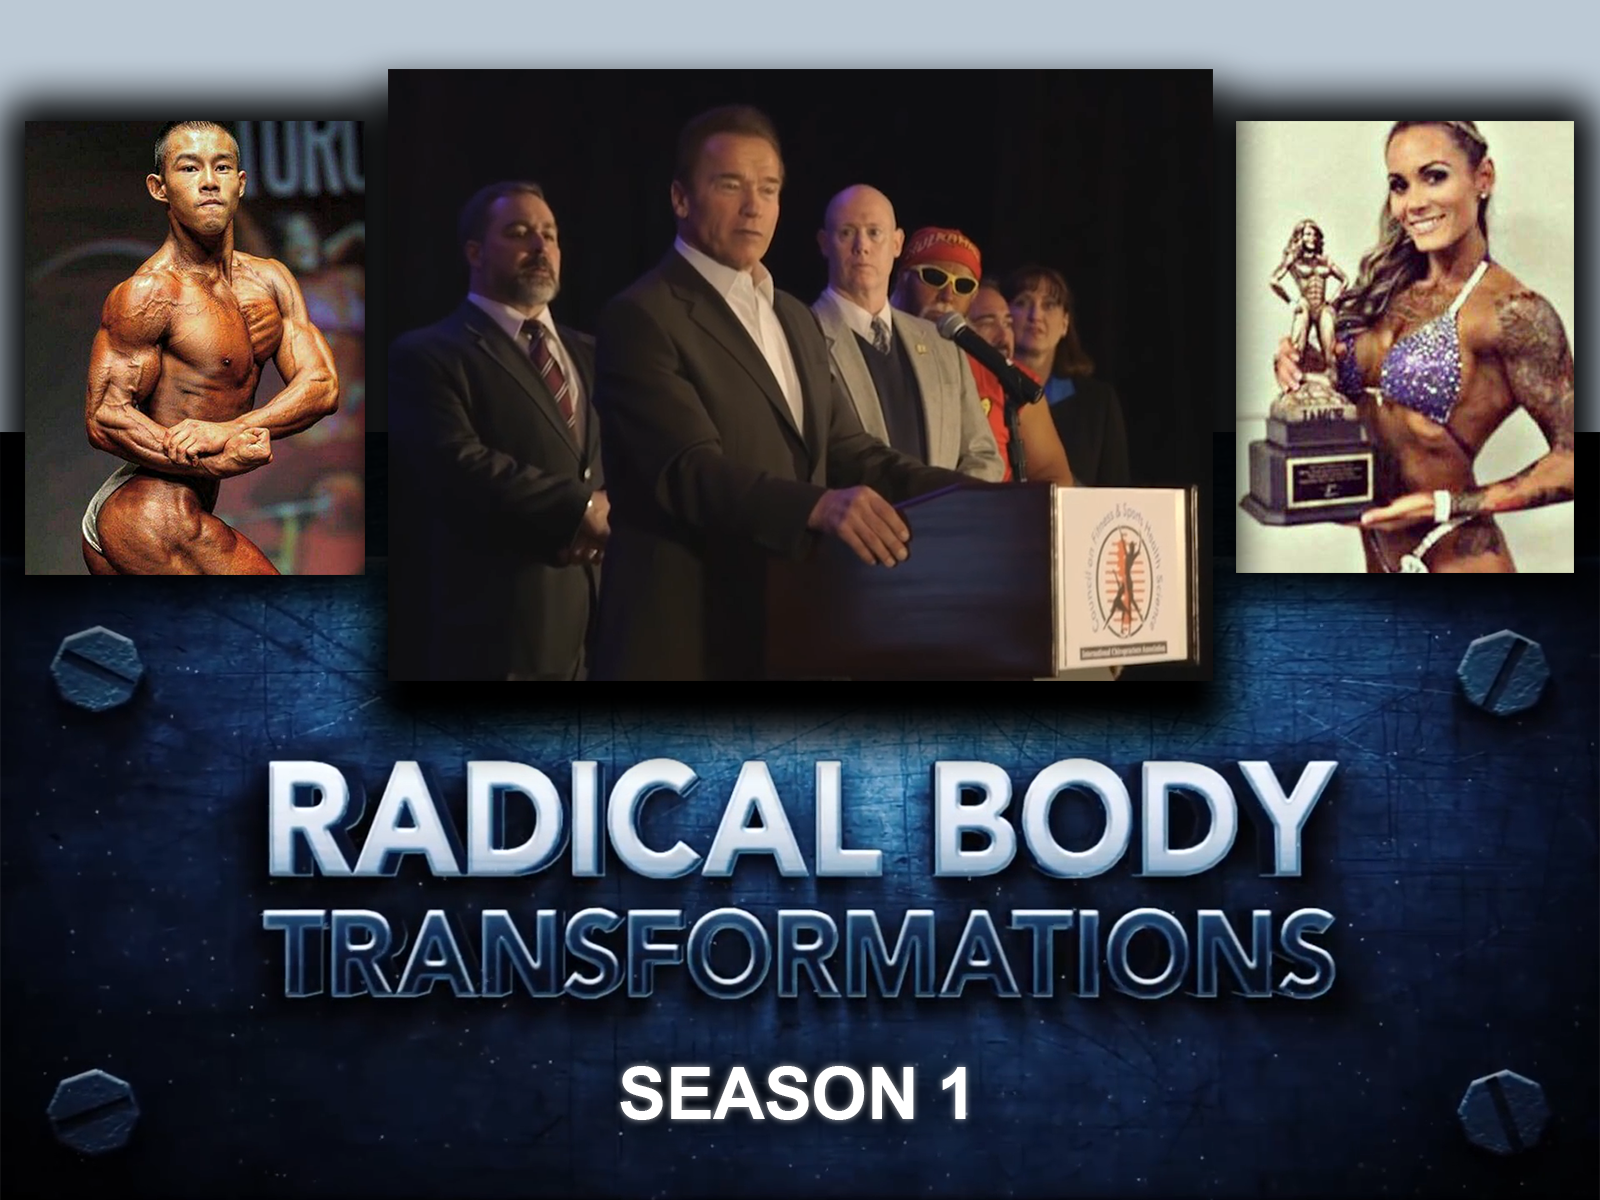 RADICAL BODY TRANSFORMATIONS SEASON 1 16